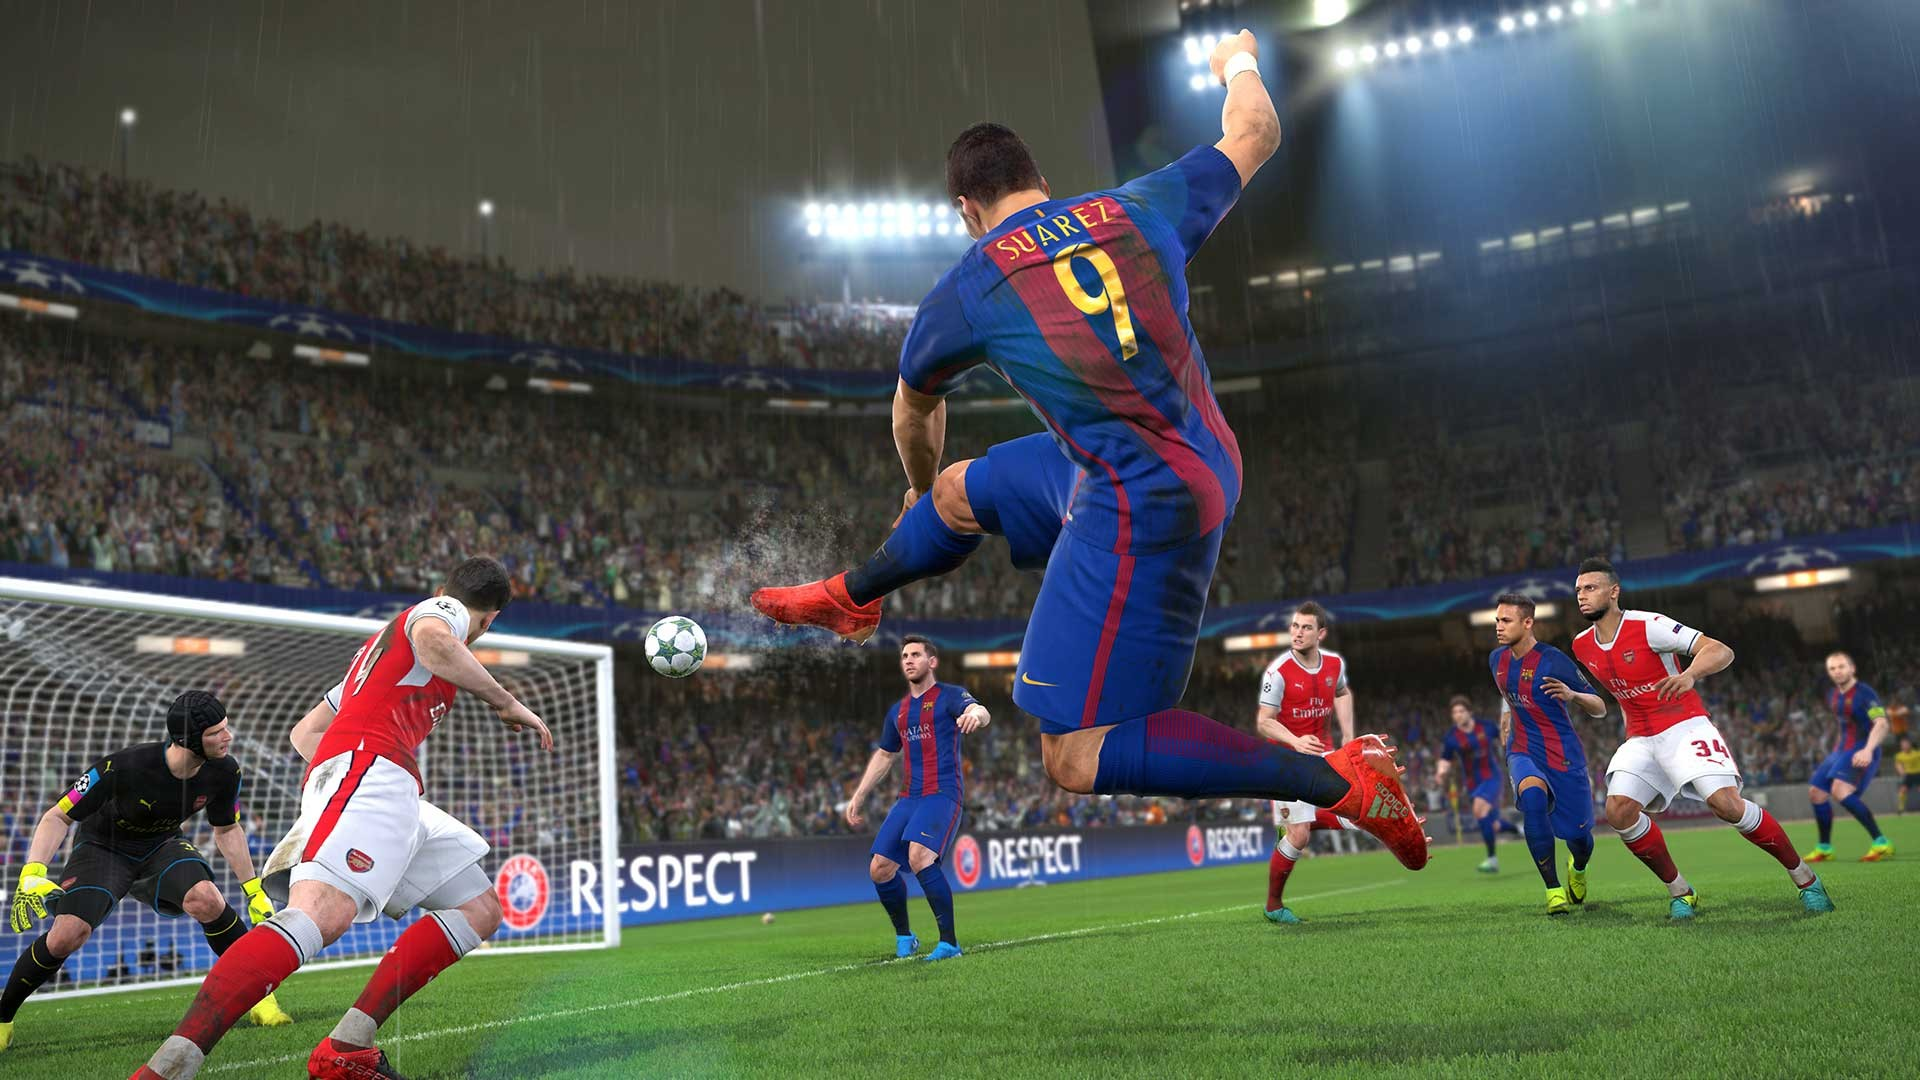 Tons of PES 2017 Gameplay Videos, Screenshots & Details From